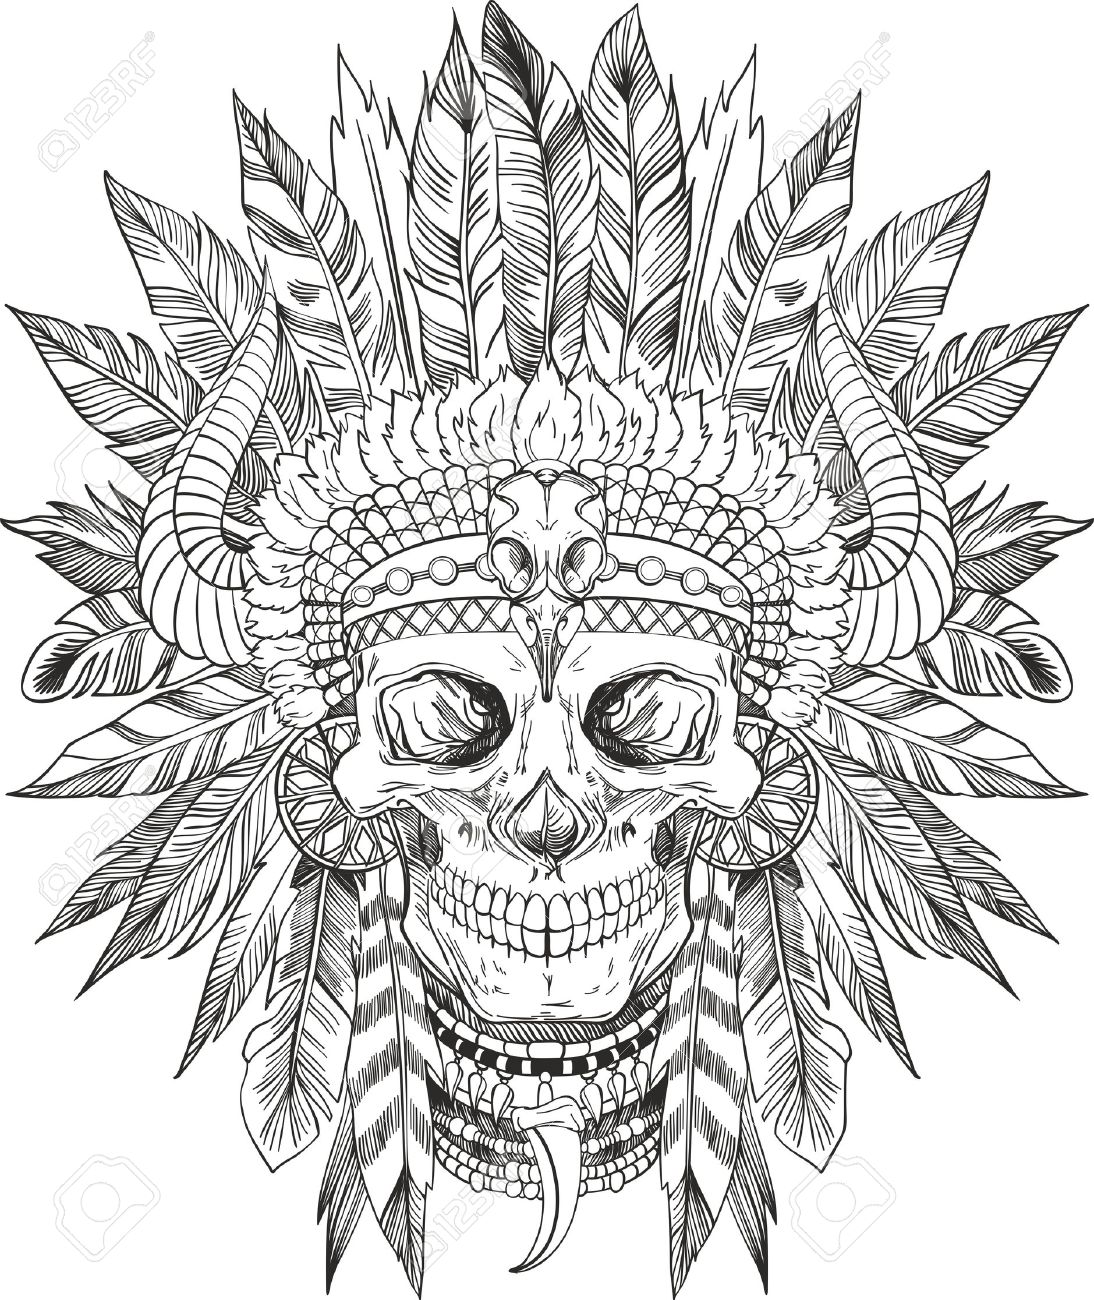 1094x1300 Skull Of Native American In Chief Headdress Royalty Free Cliparts